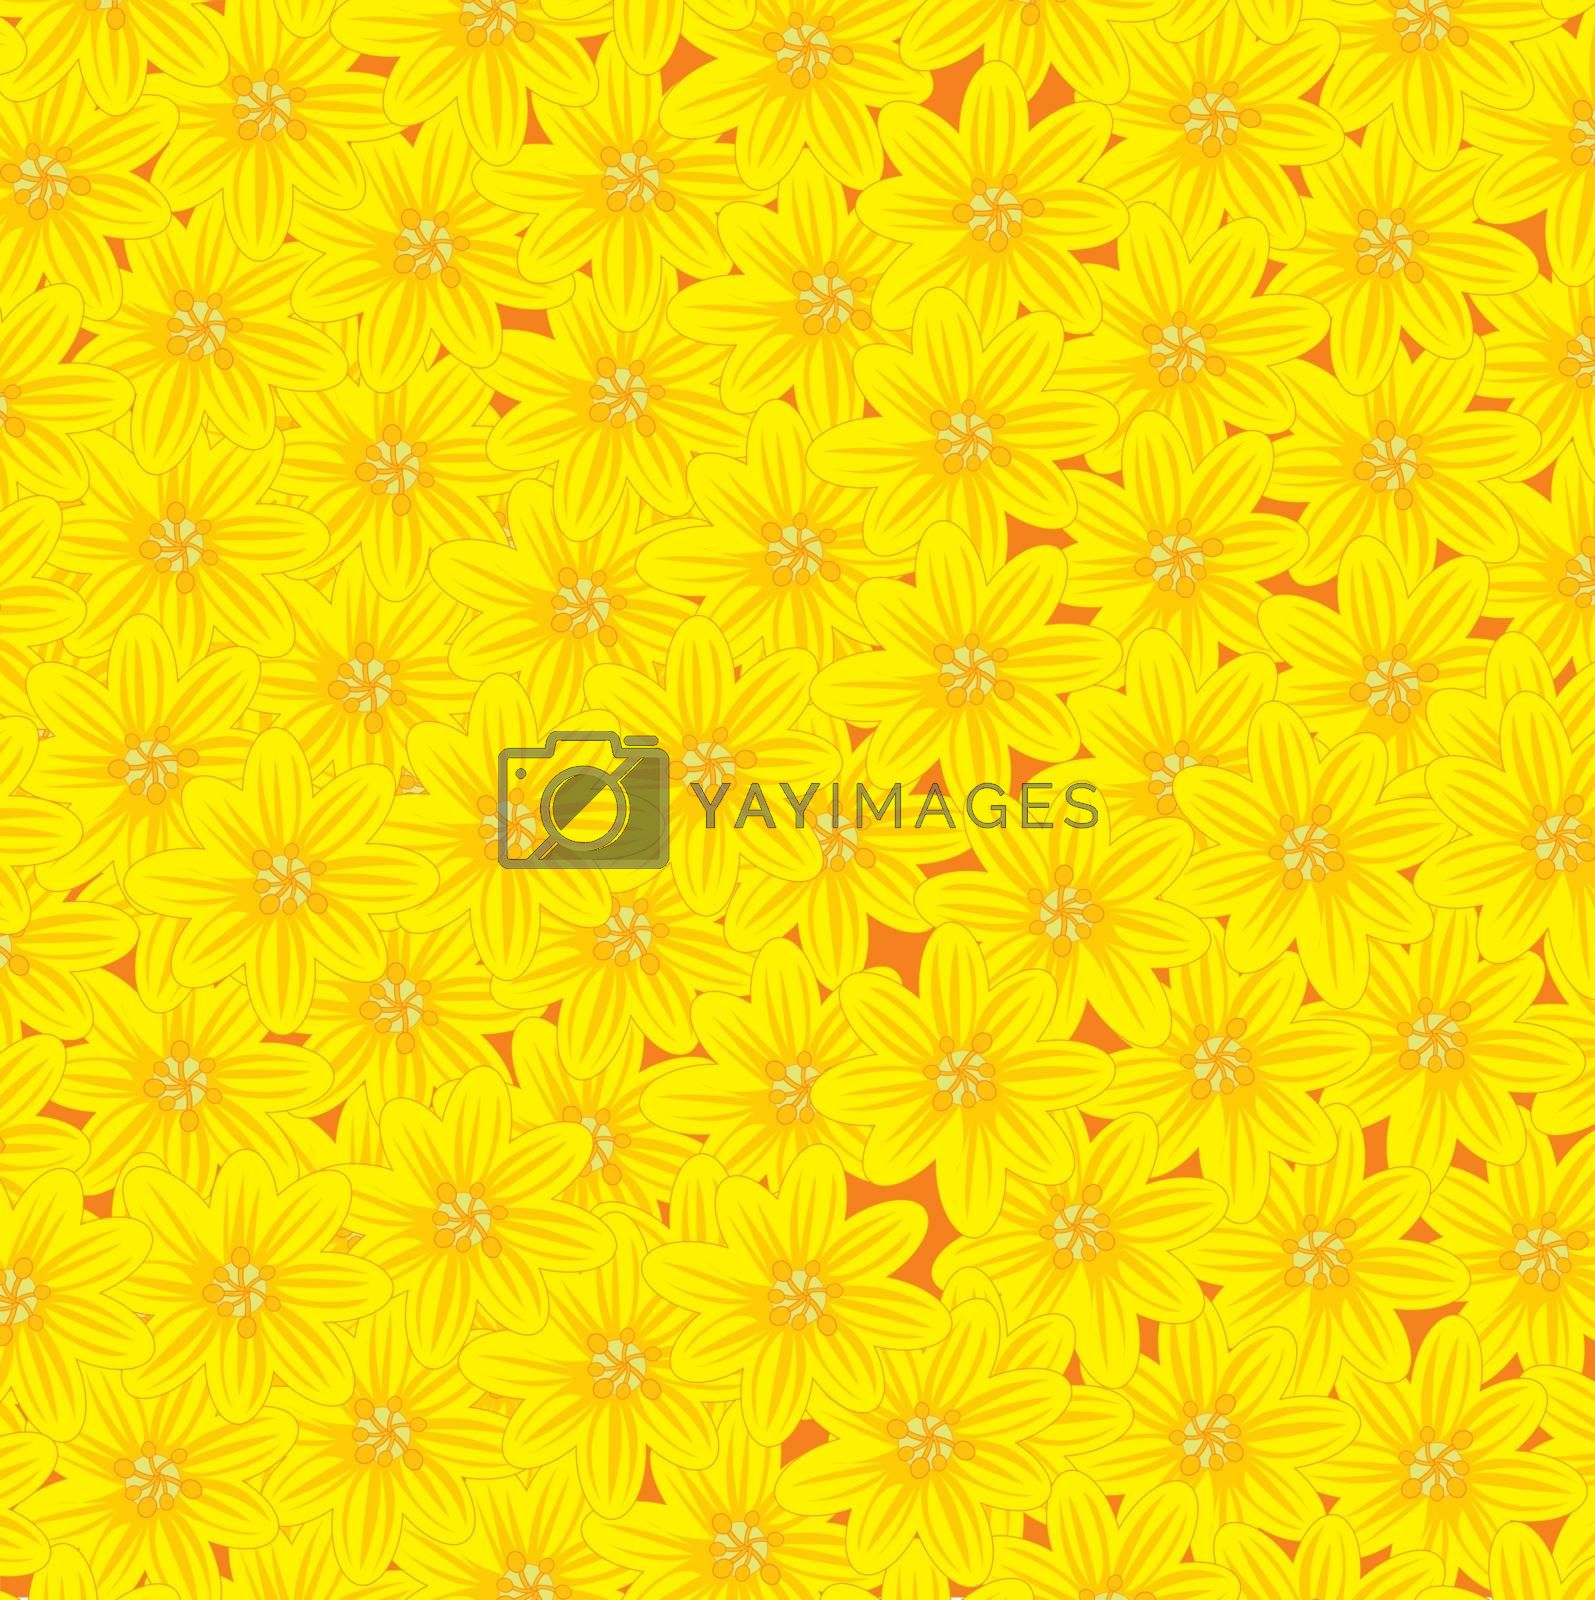 Vector illustration of the decorative background from yellow flower